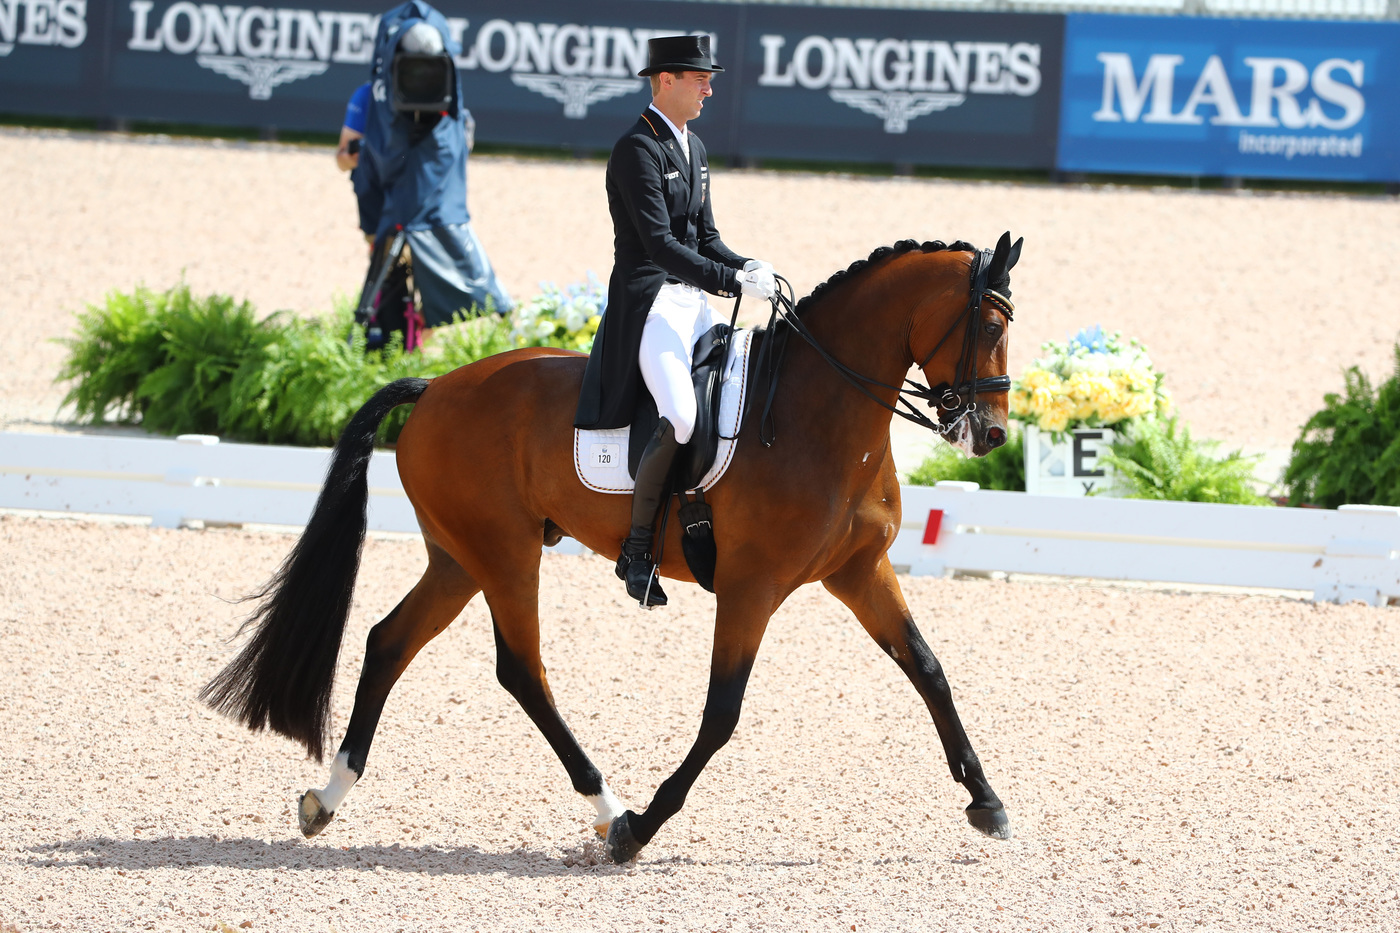 Longines Eventing Event: Performance at its peak during the first week of the  FEI World Equestrian GamesTM Tryon 2018 11